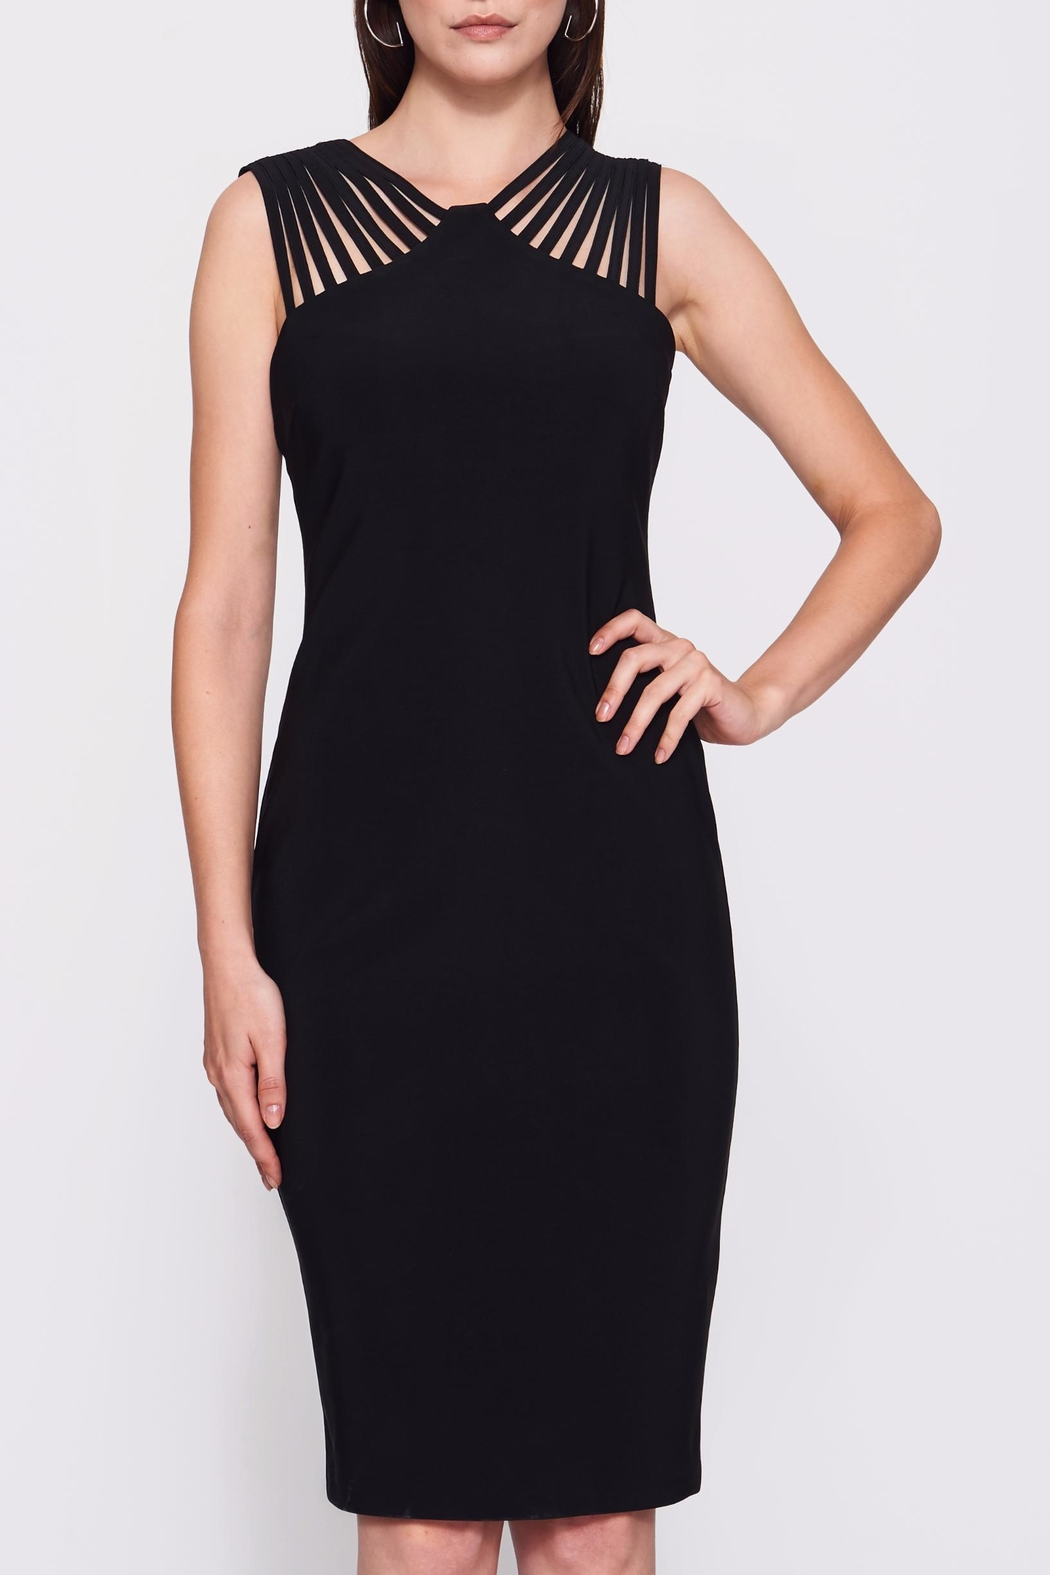 Frank Lyman Lace Black Dress - Main Image